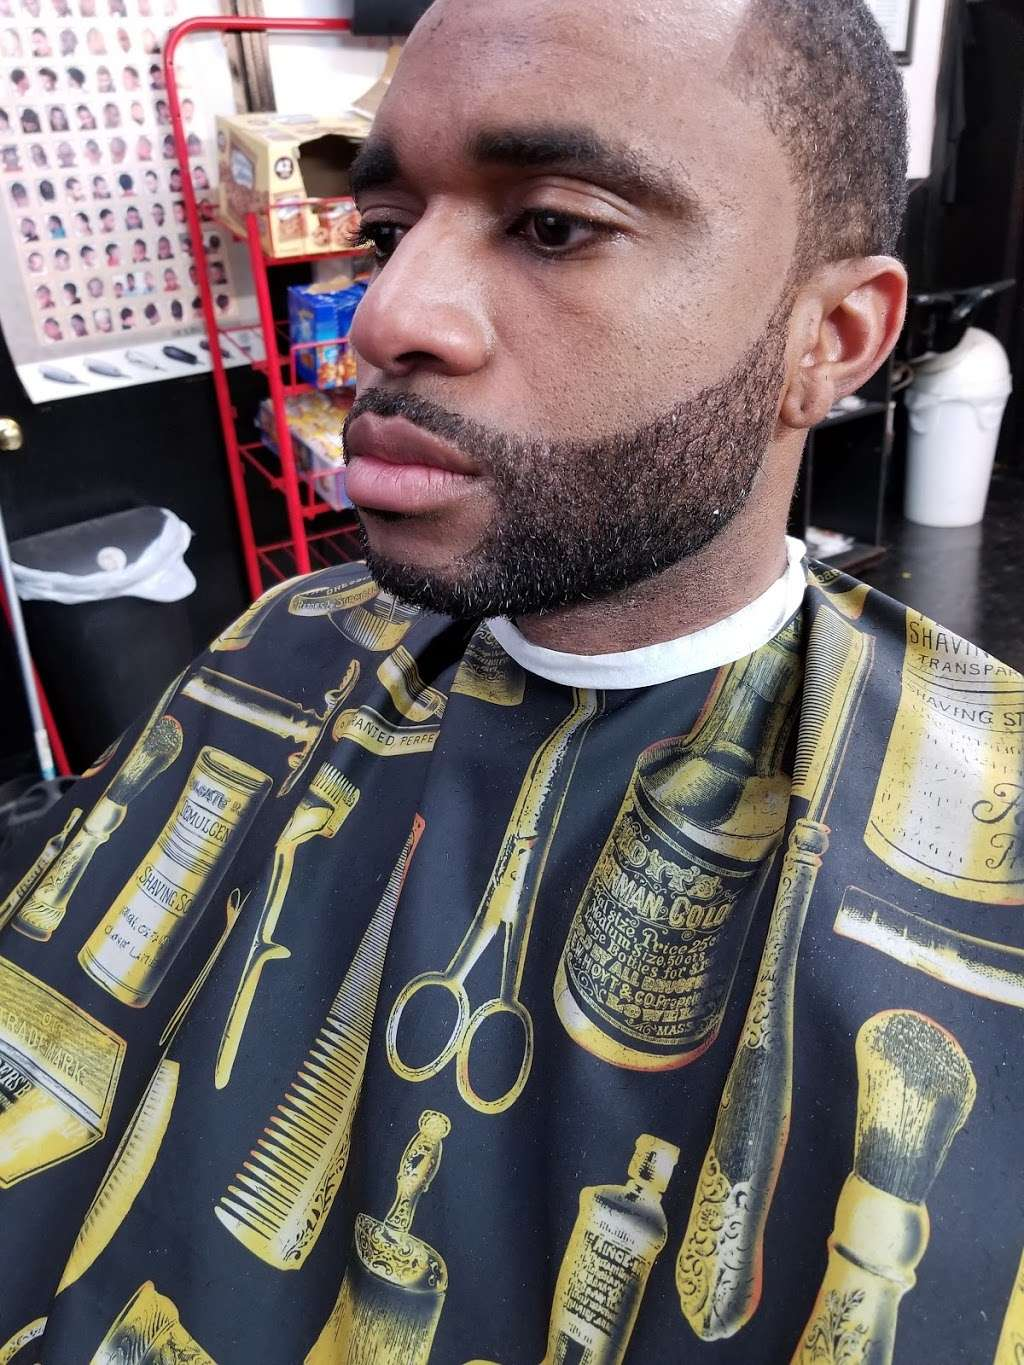 Cut Creations Barber Shop - hair care  | Photo 7 of 10 | Address: 5301 N Wayside Dr, Houston, TX 77028, USA | Phone: (713) 671-9825